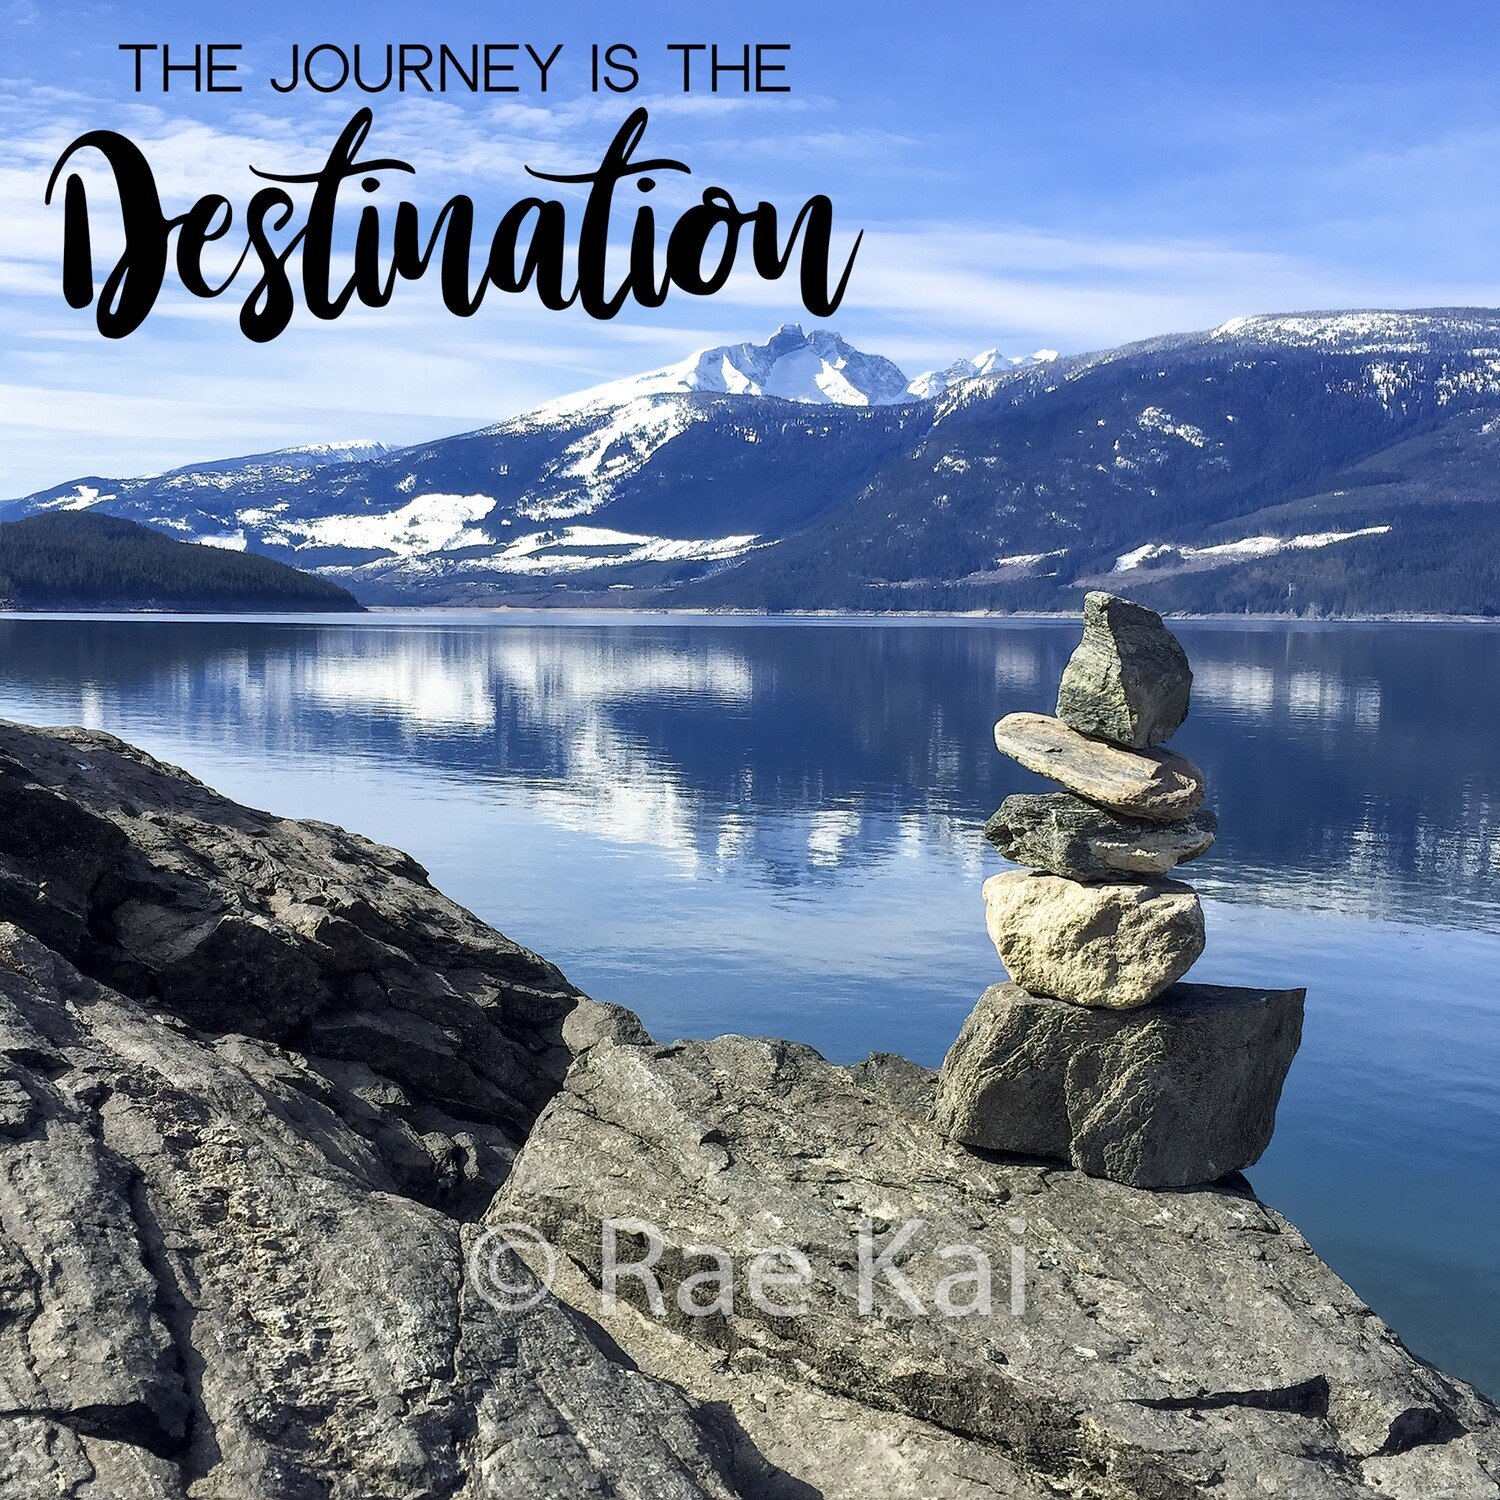 The Journey Is The Destination-Inspirational Square Photo